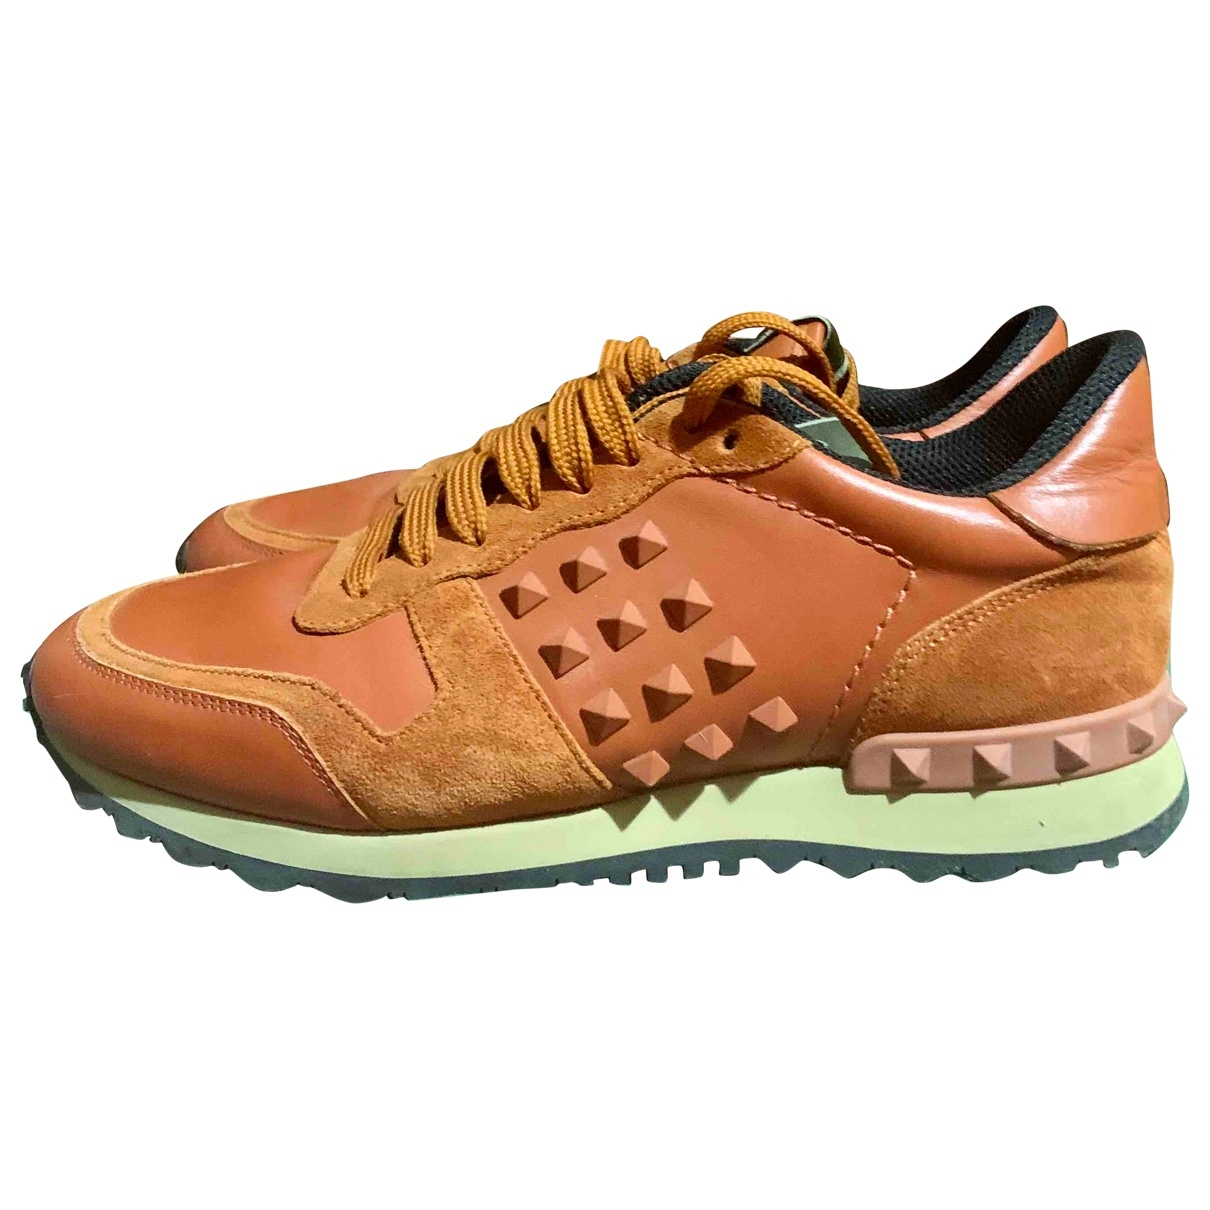 Valentino Garavani Rockrunner Orange Leather Trainers for Men 39 EU